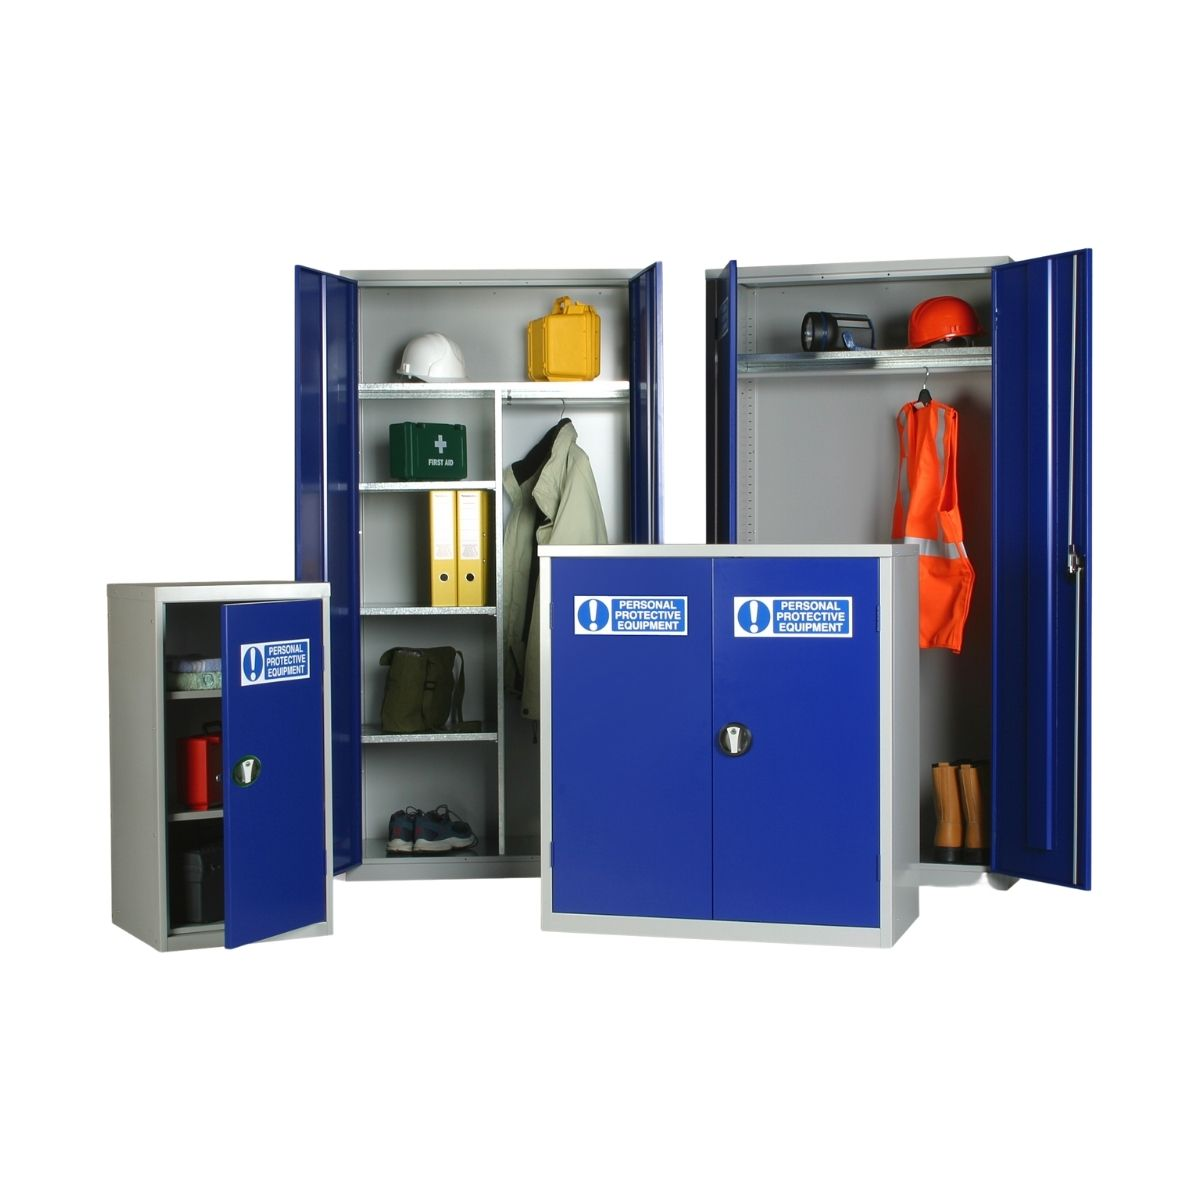 JP0036 PPE Cabinets 1830 x 915 x 457 Clothing & Equipment